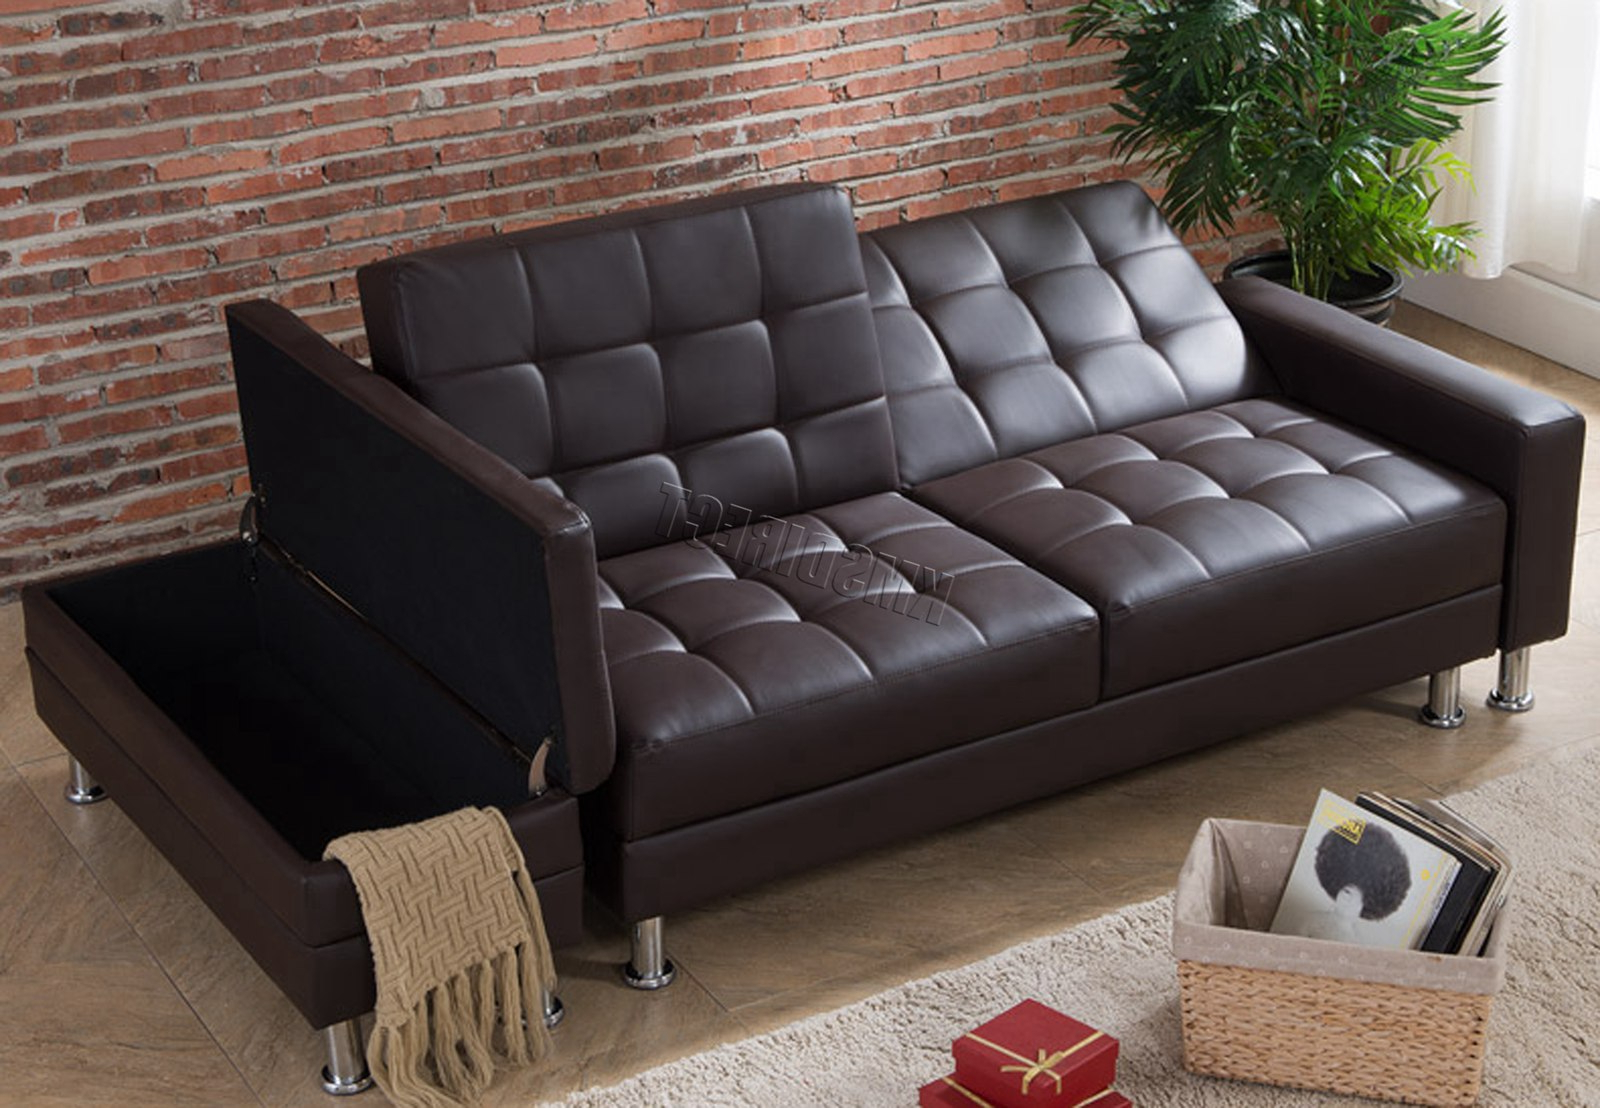 Westwood Pu Sofa Bed With Storage 3 Seater Guest Sleeper With Regard To Well Liked Liberty Sectional Futon Sofas With Storage (View 1 of 20)